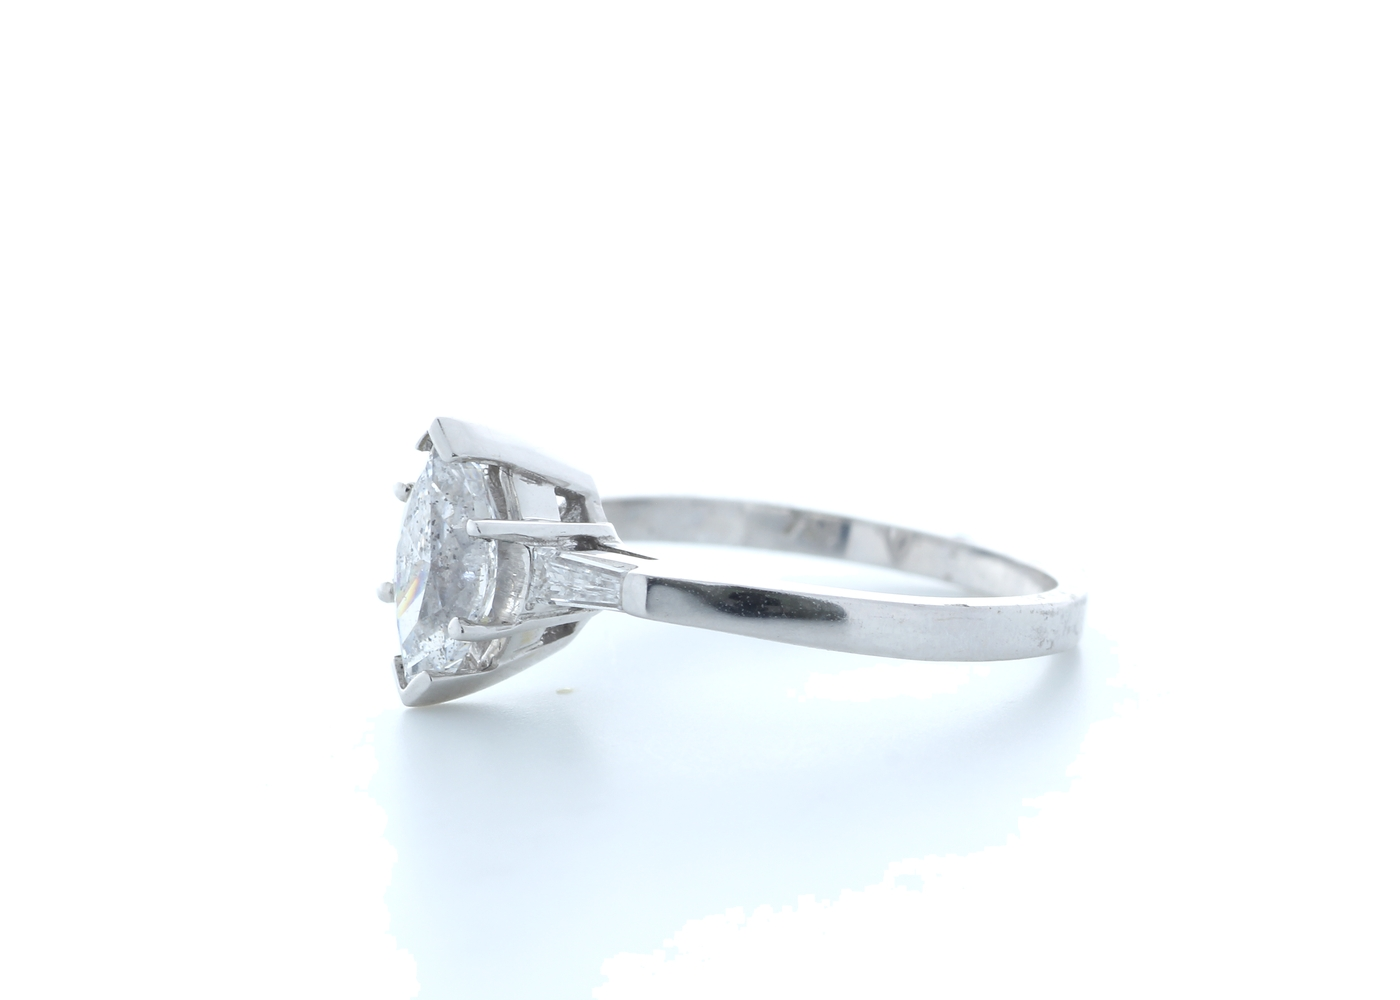 18ct White Gold Marquise Diamond With Stone Set Shoulders 1.22 Carats - Image 2 of 5